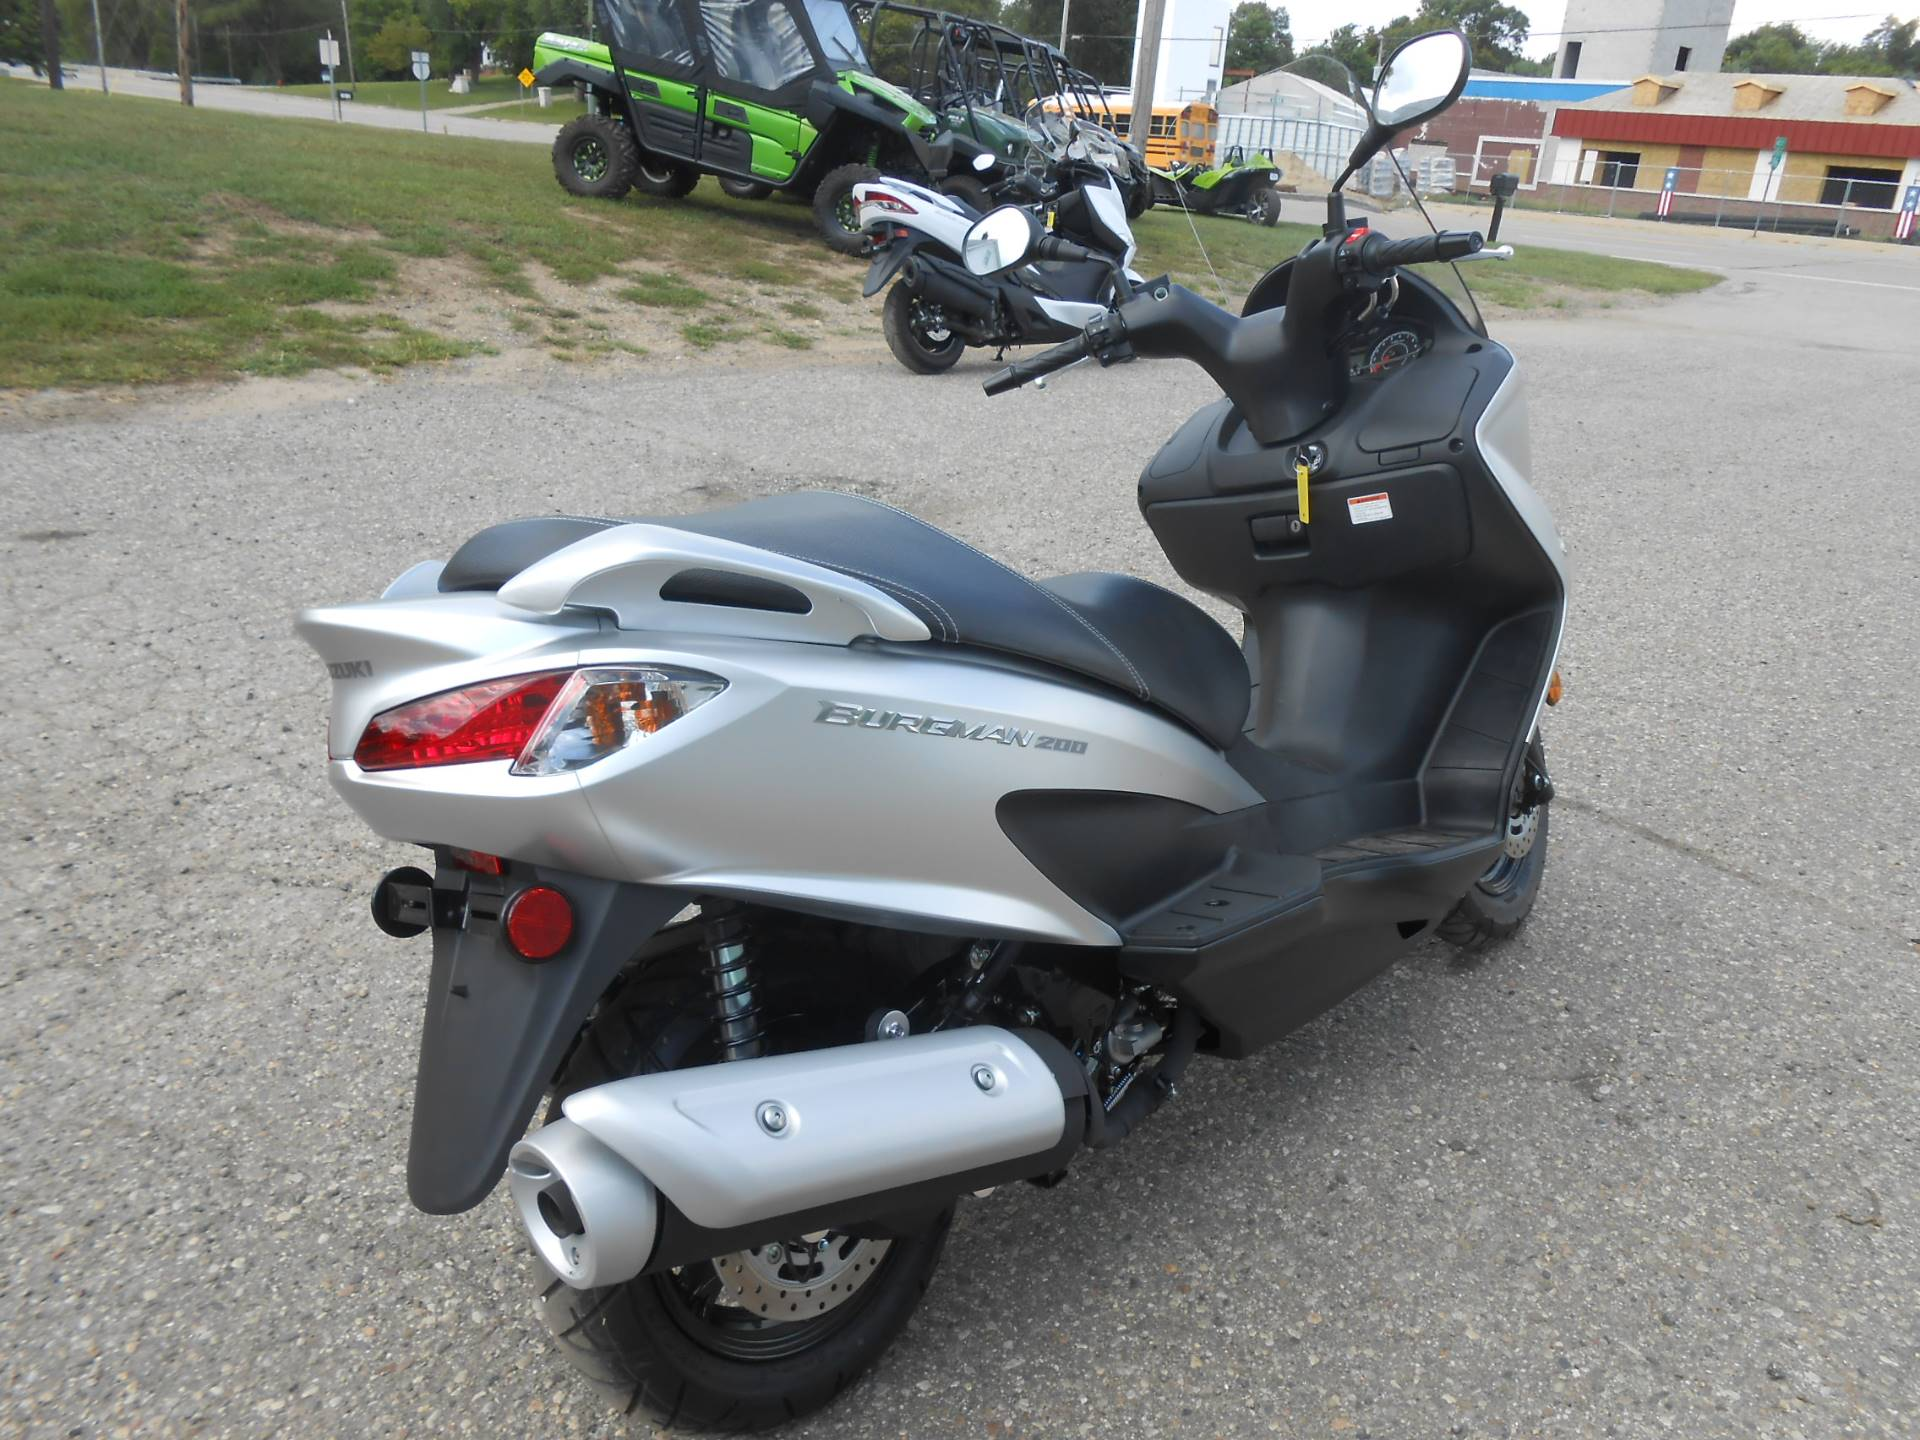 2018 Suzuki Burgman 200 in Howell, Michigan - Photo 5